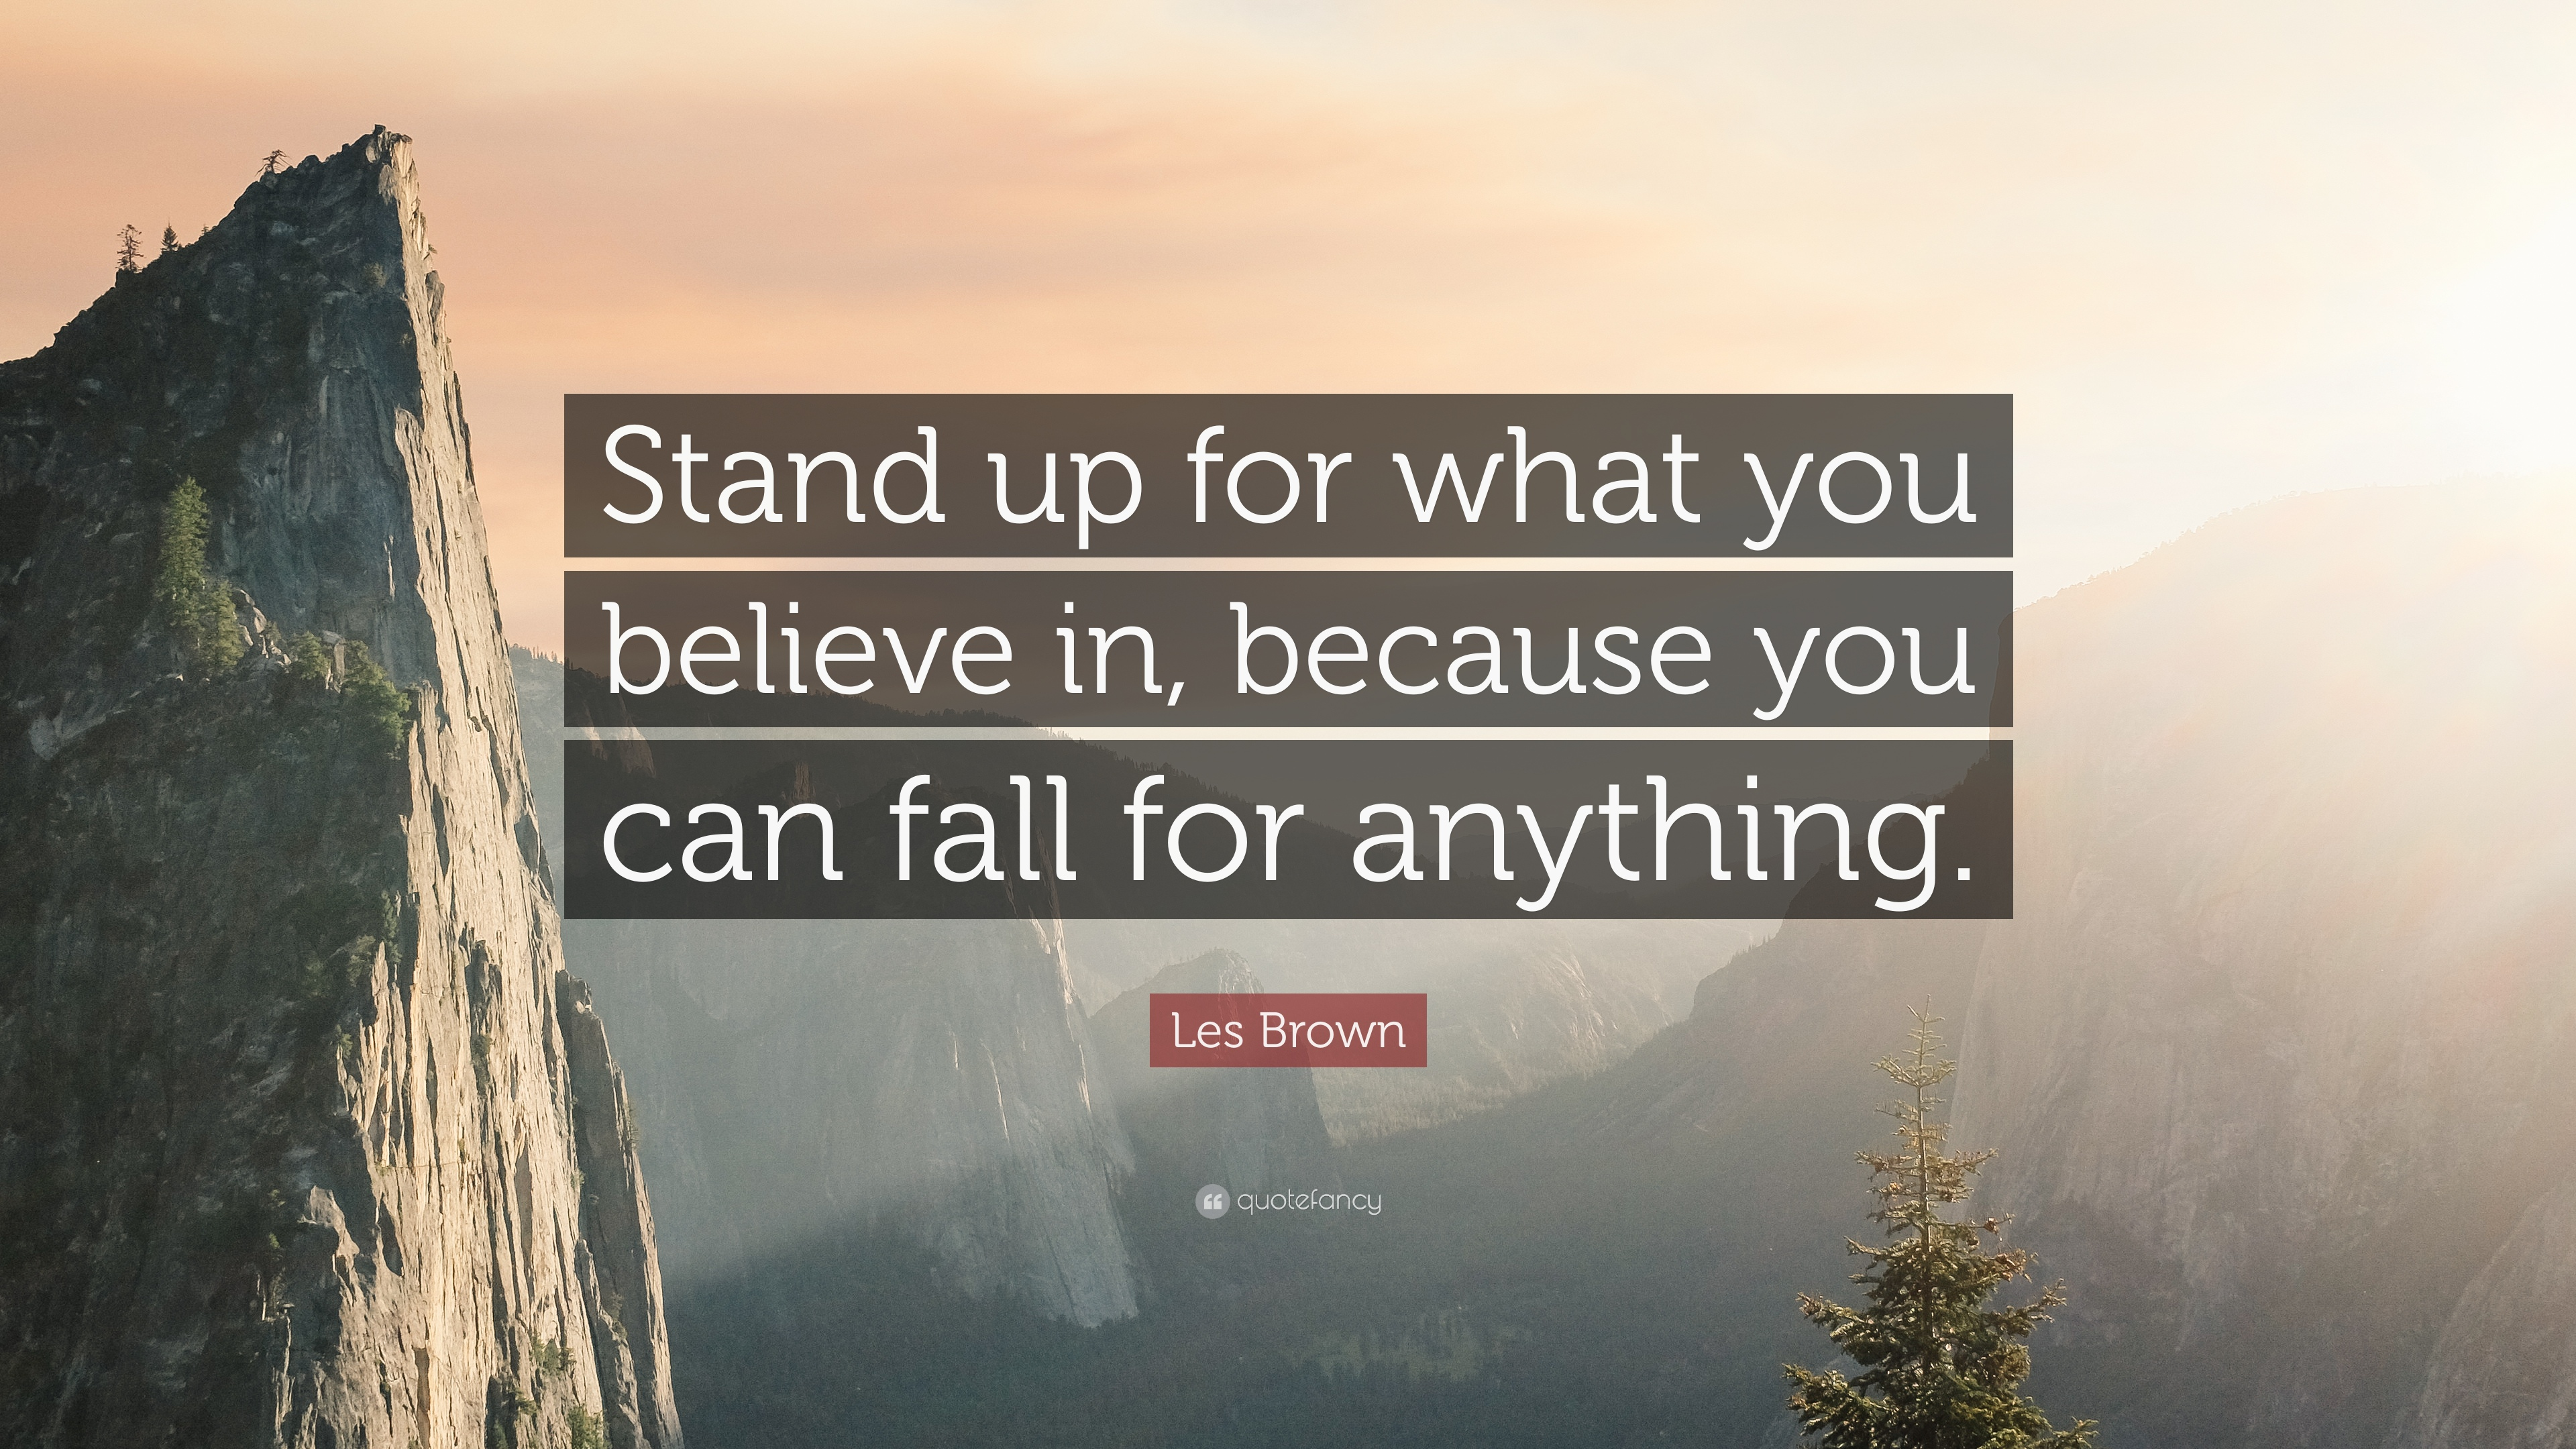 standing up for something you believe in essay Standing up for what you believe essays courage is standing up for what you believe courage is standing up for what you believe in, or doing something that.